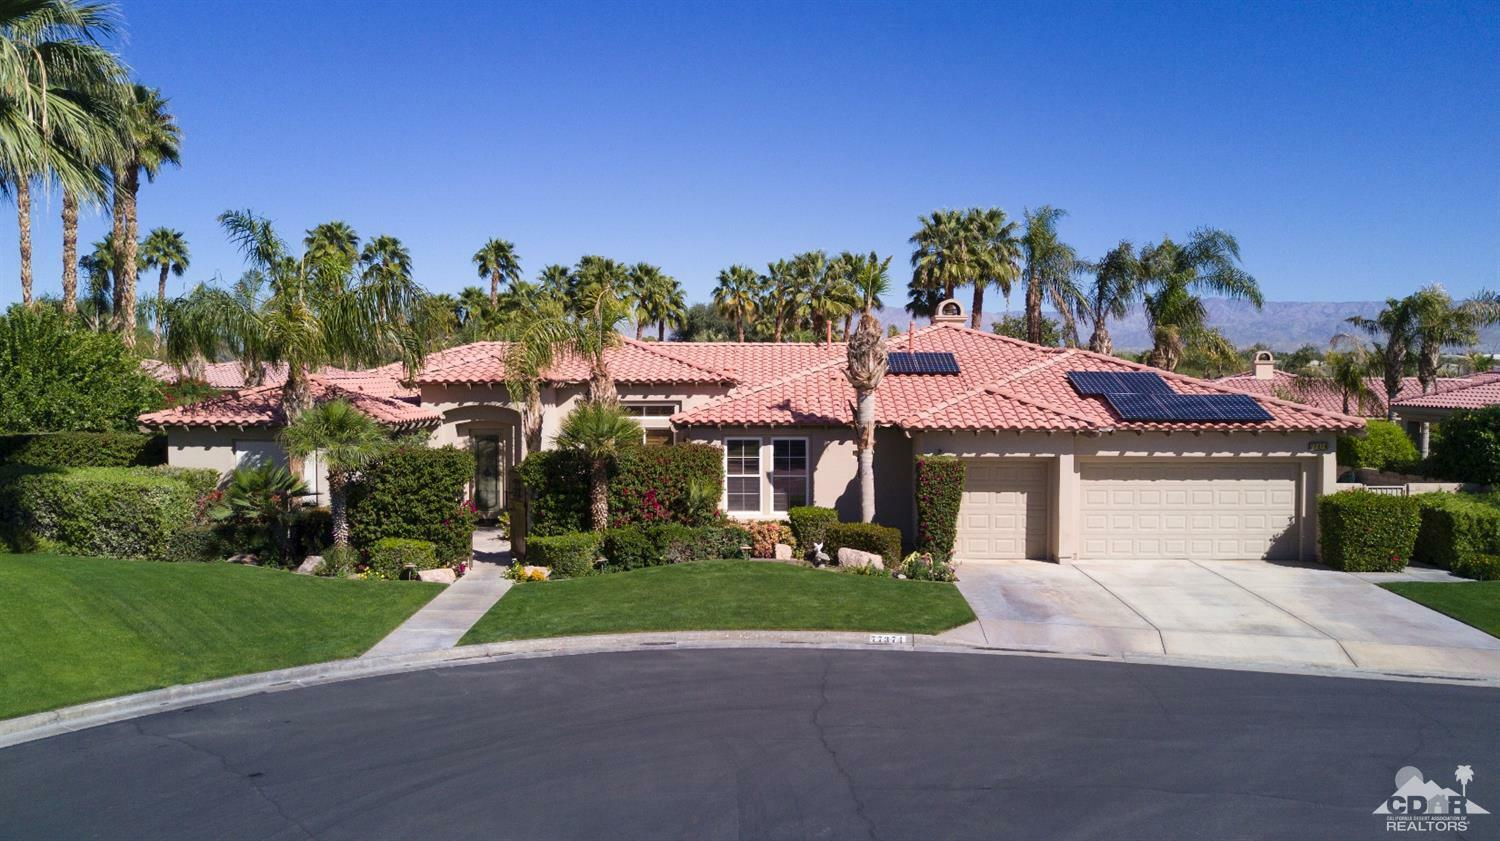 77374 Box Ridge Place, Indian Wells, CA - USA (photo 1)